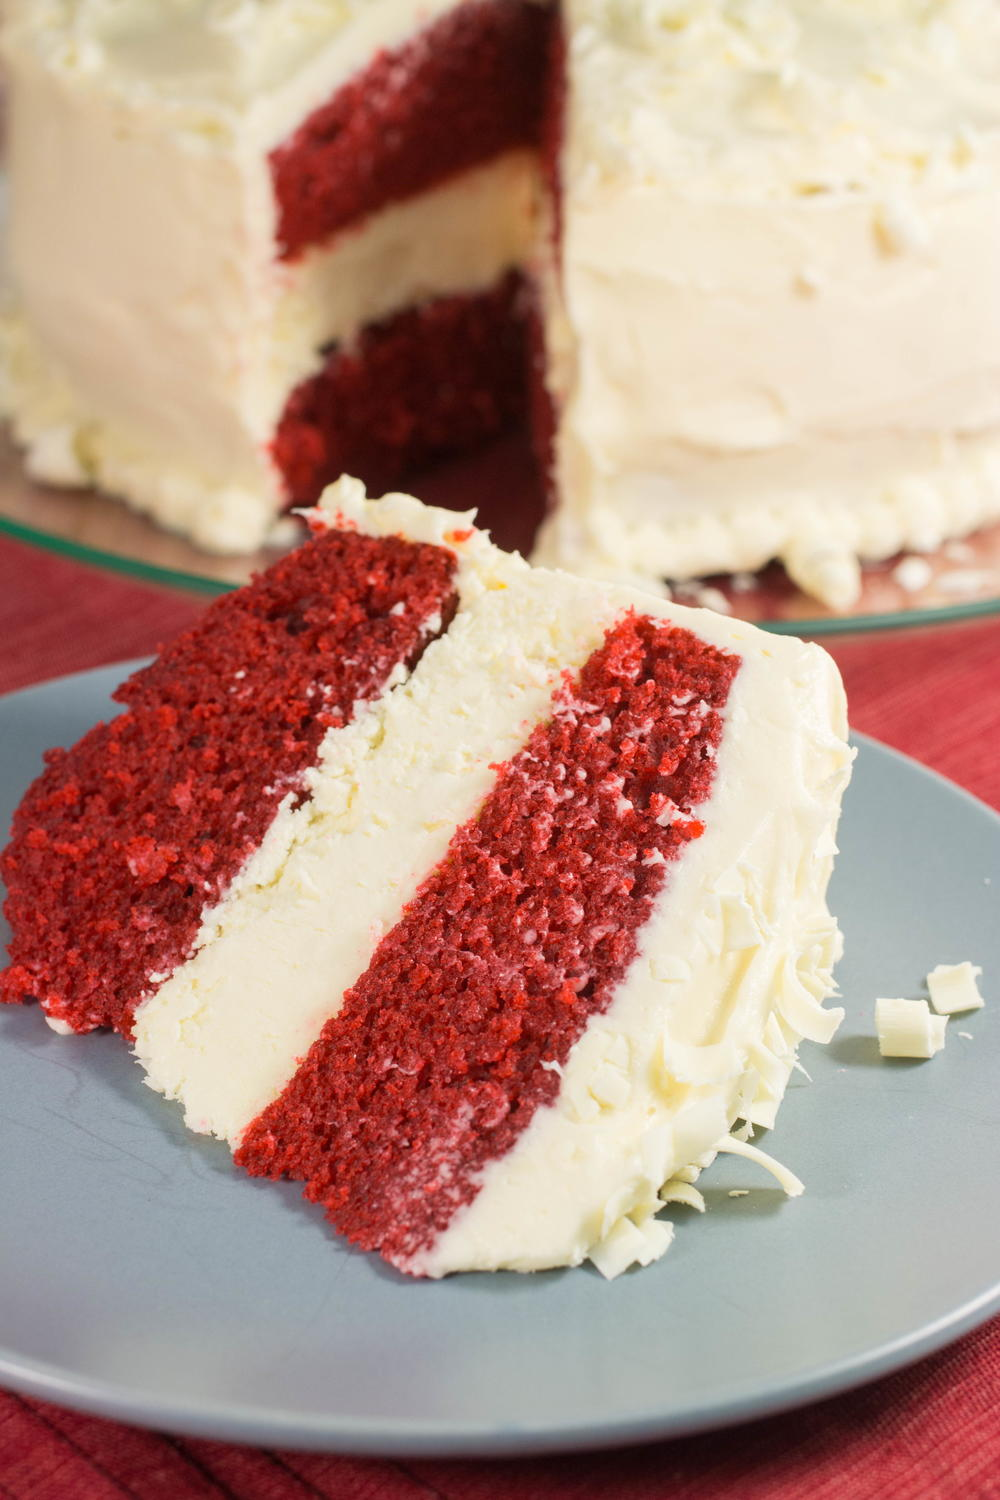 Decadent Red Velvet Cheesecake Favesouthernrecipes Com